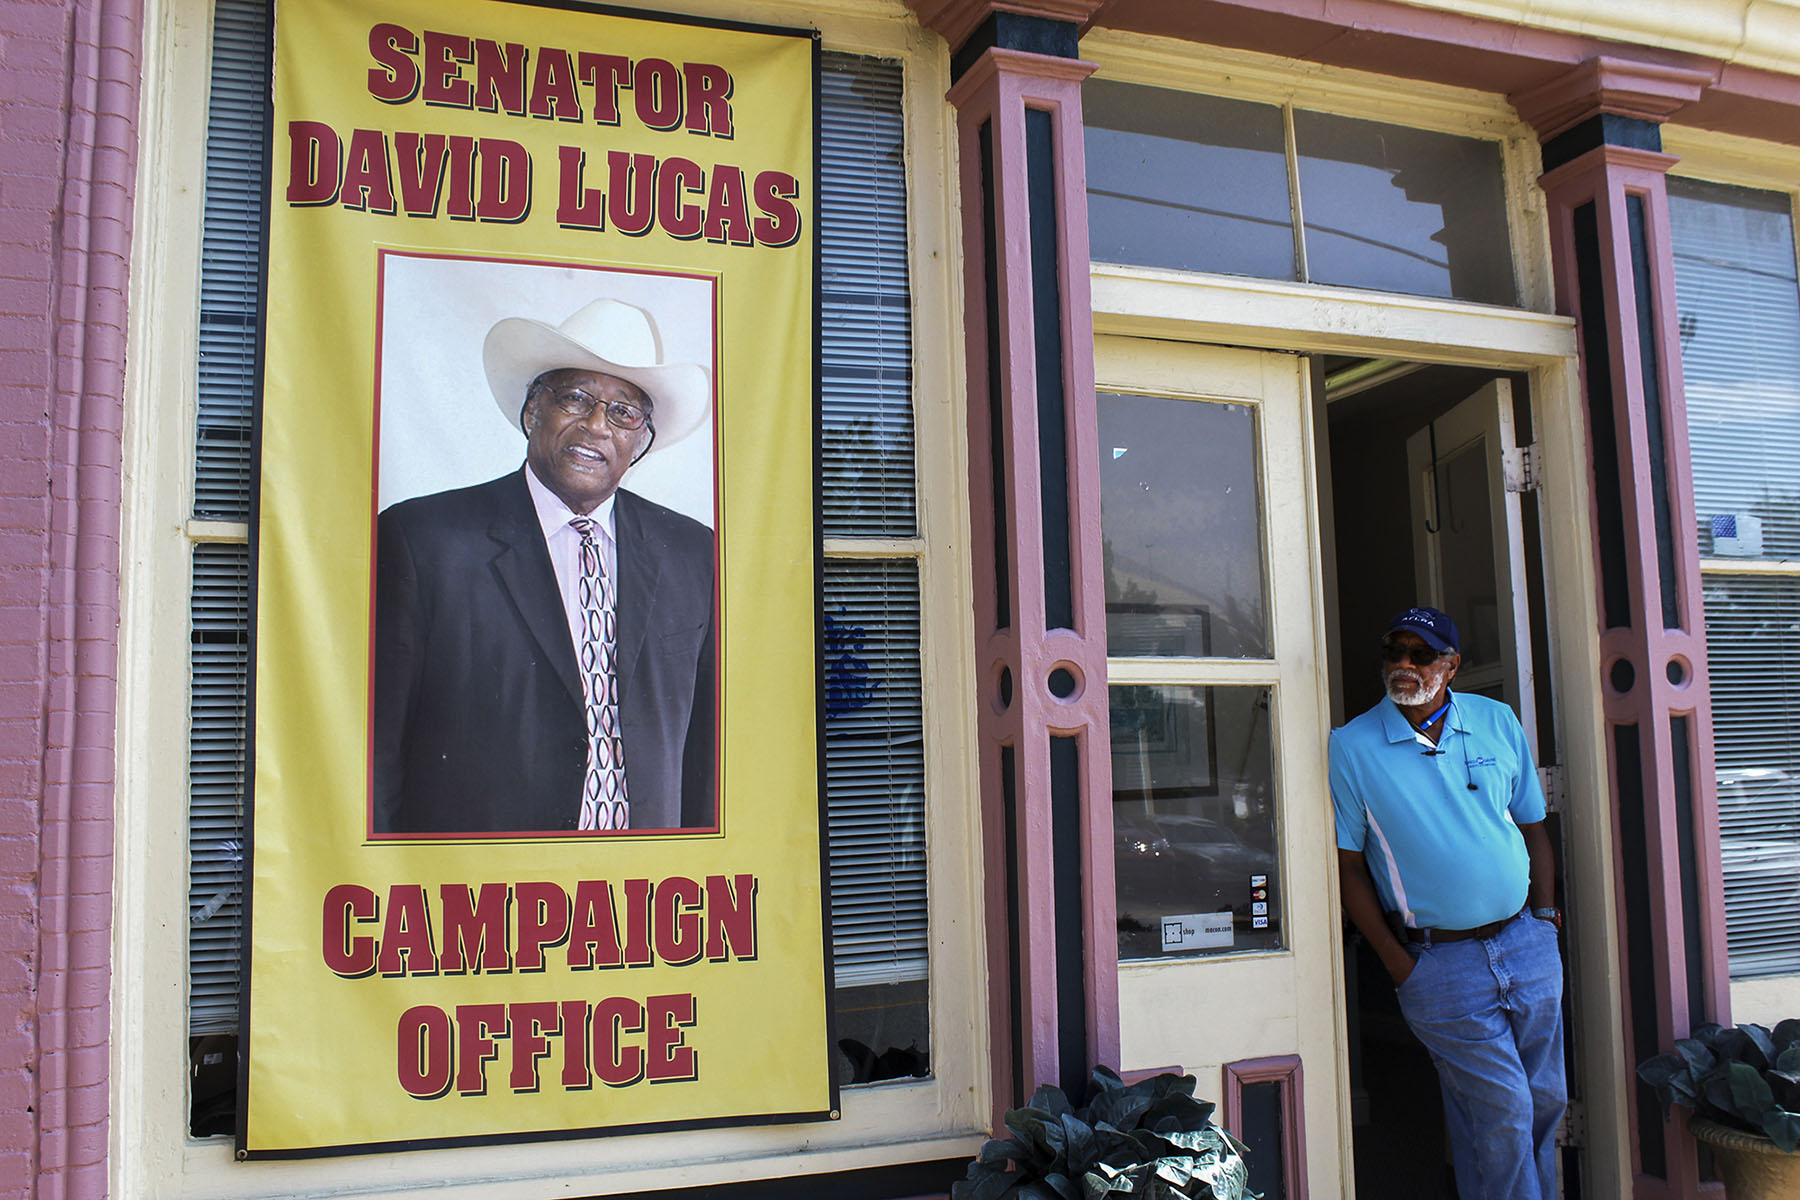 David Lucas has served the East Macon area as a state senator since 2012. In his childhood, he said he had a near-death experience that inspired him to pursue a political career. (Photo and audio by Phillip Jackson/News21)